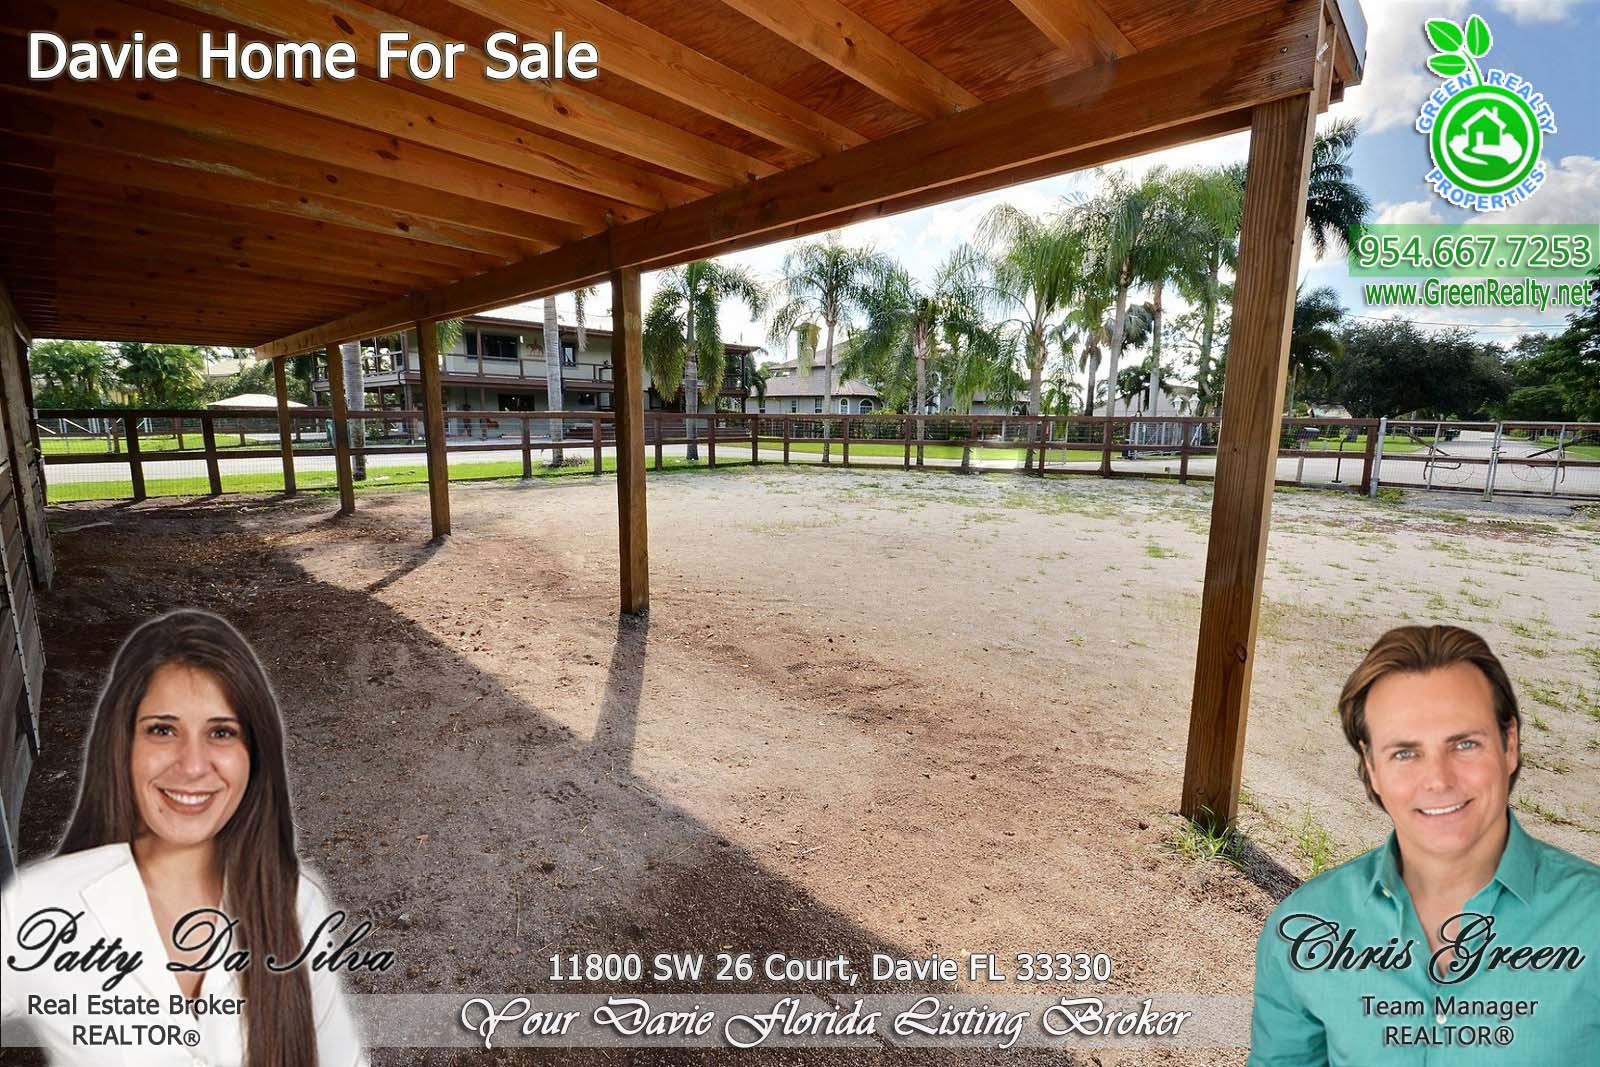 31 Davie Homes For Sale (1)